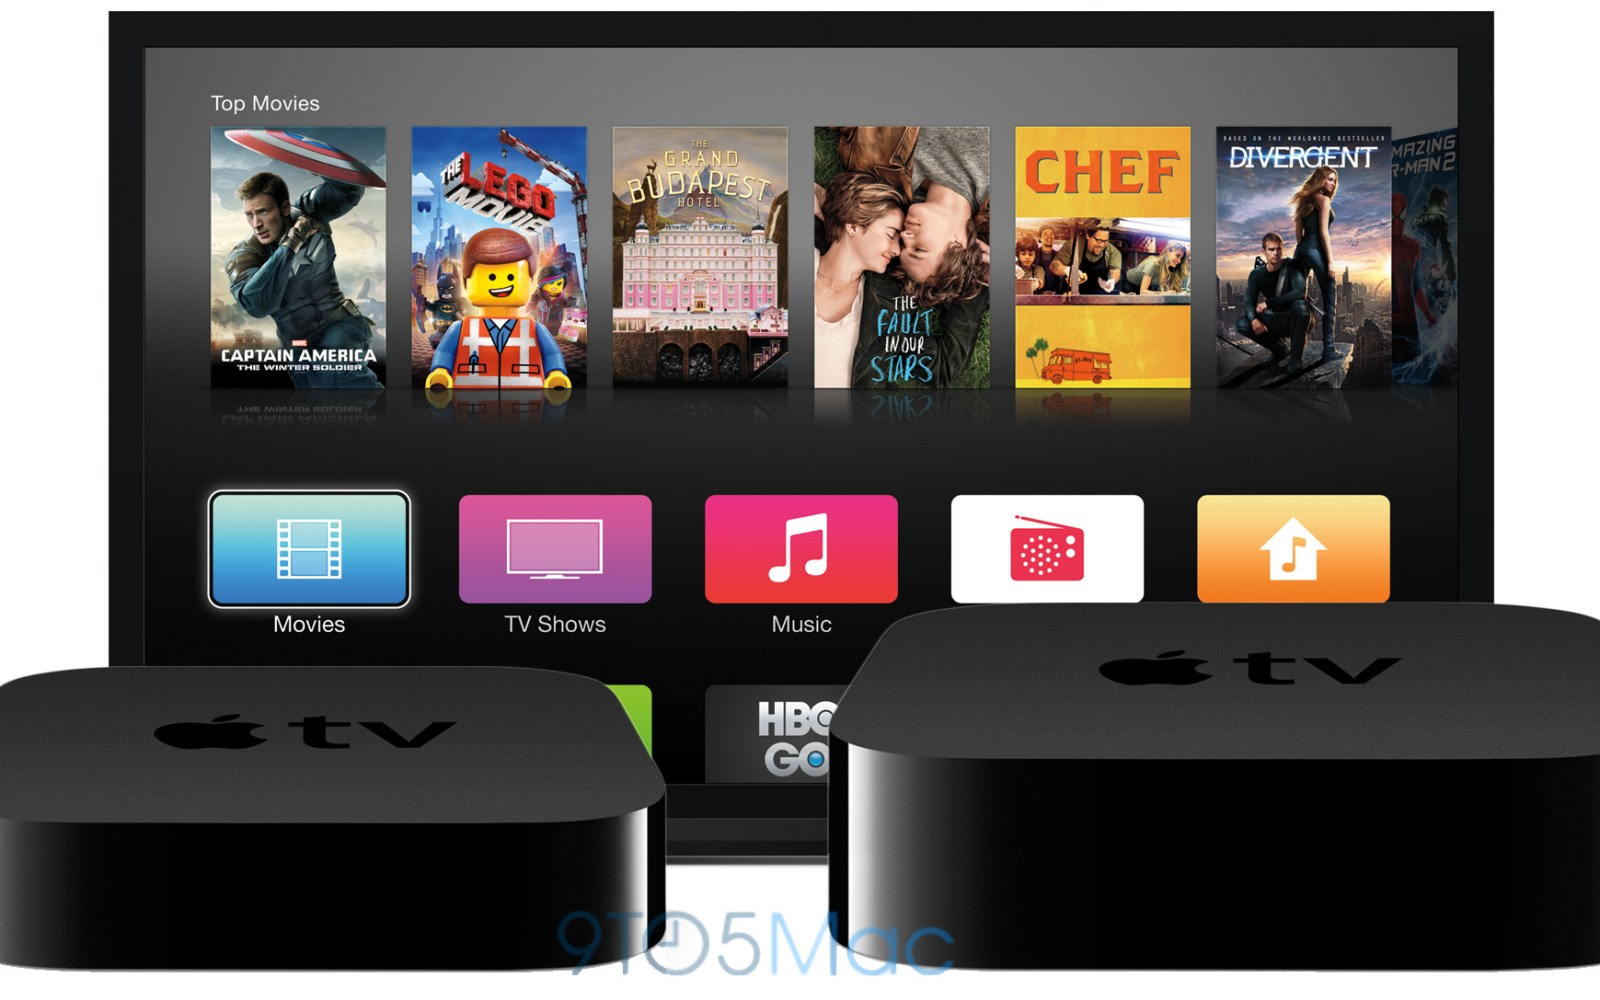 Apple TV 4: Gaming and Siri will be major focuses, expect Bluetooth game controllers + enhanced wireless